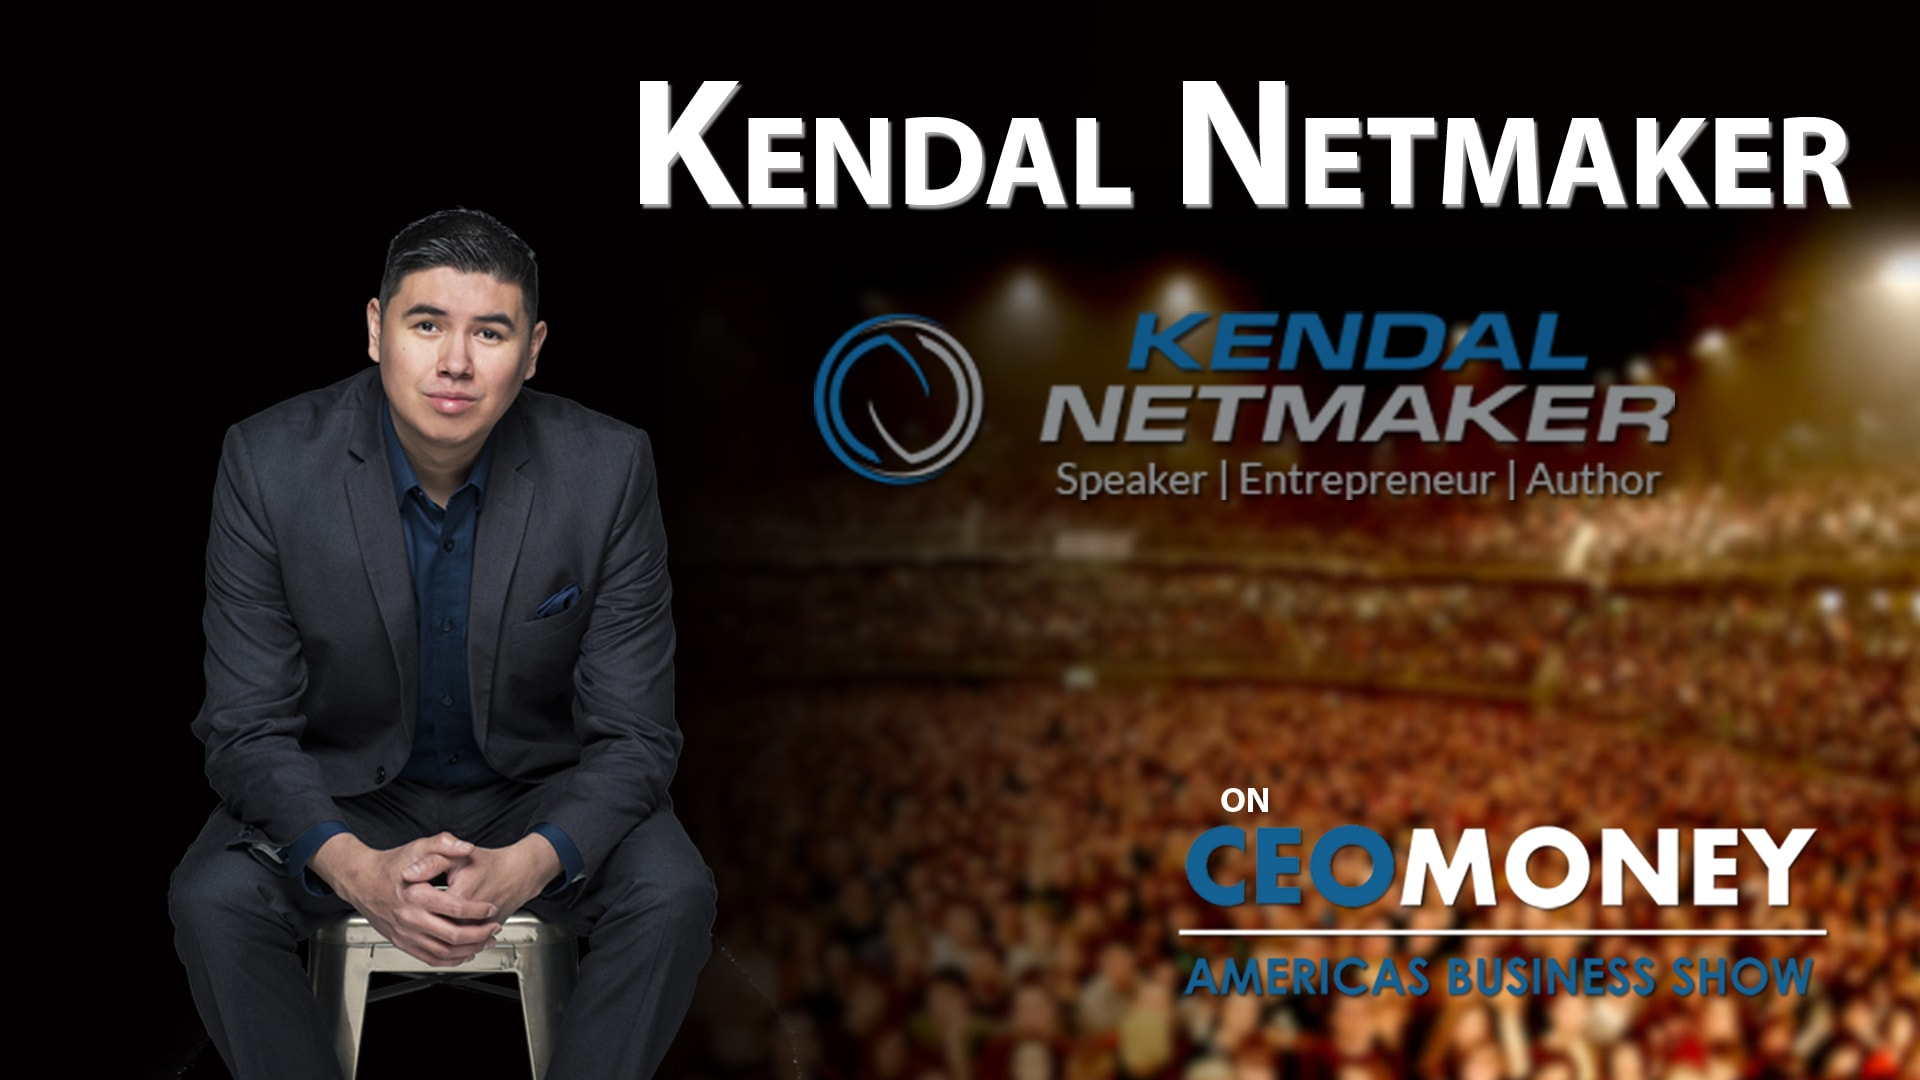 Kendal Netmaker helps entrepreneurs overcome obstacles and create lasting brand impact